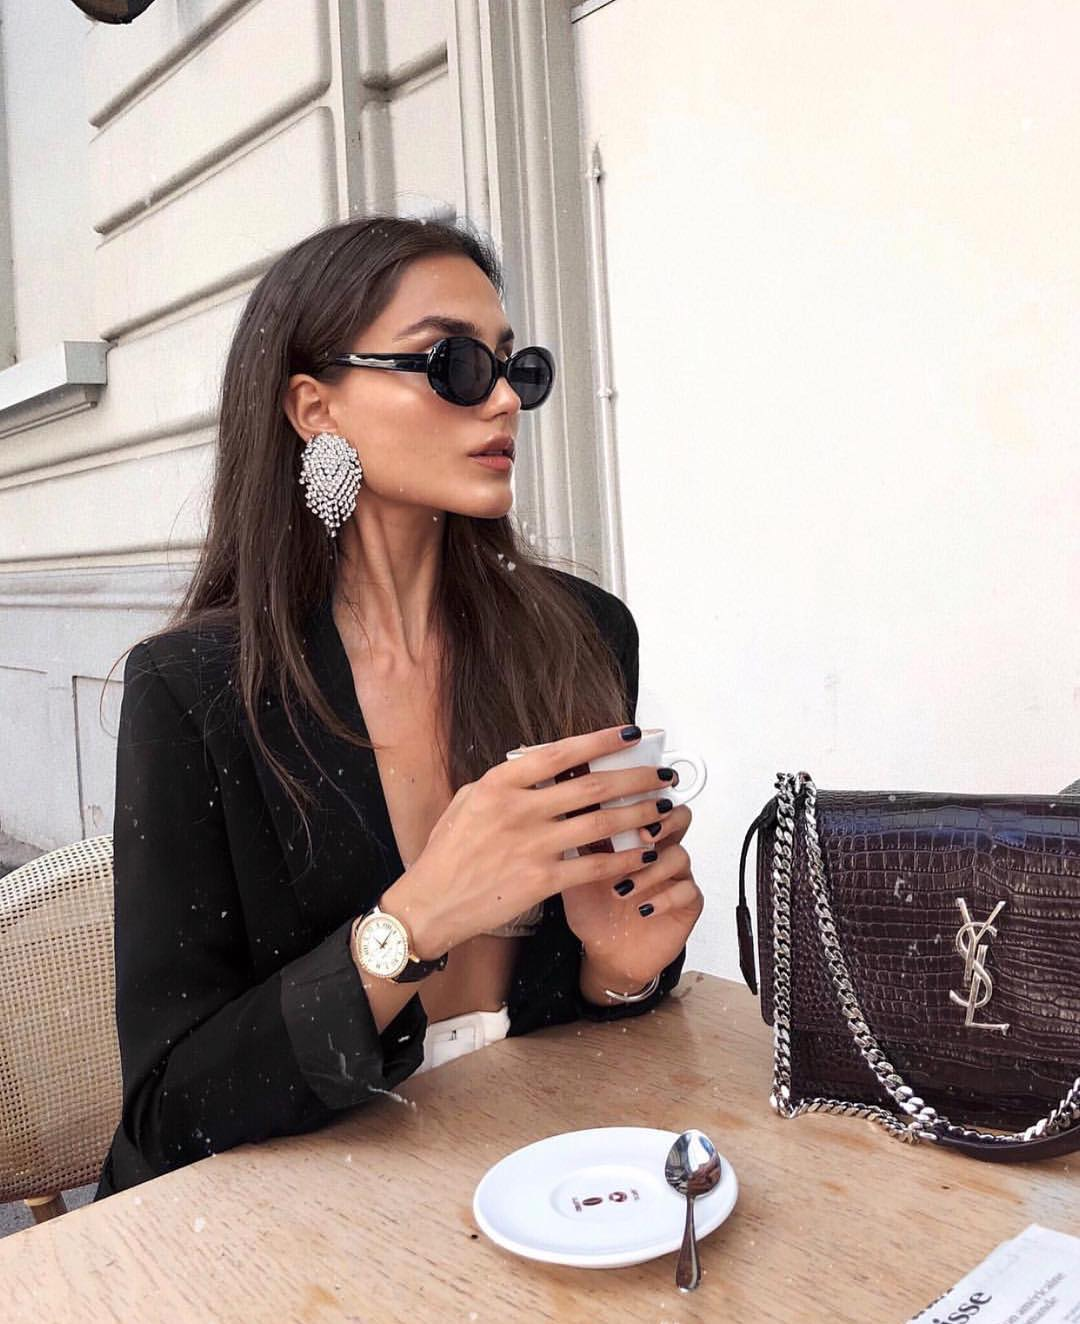 Black Blazer And Retro Inspired Sunglasses With Crystal Statement Earrings 2019